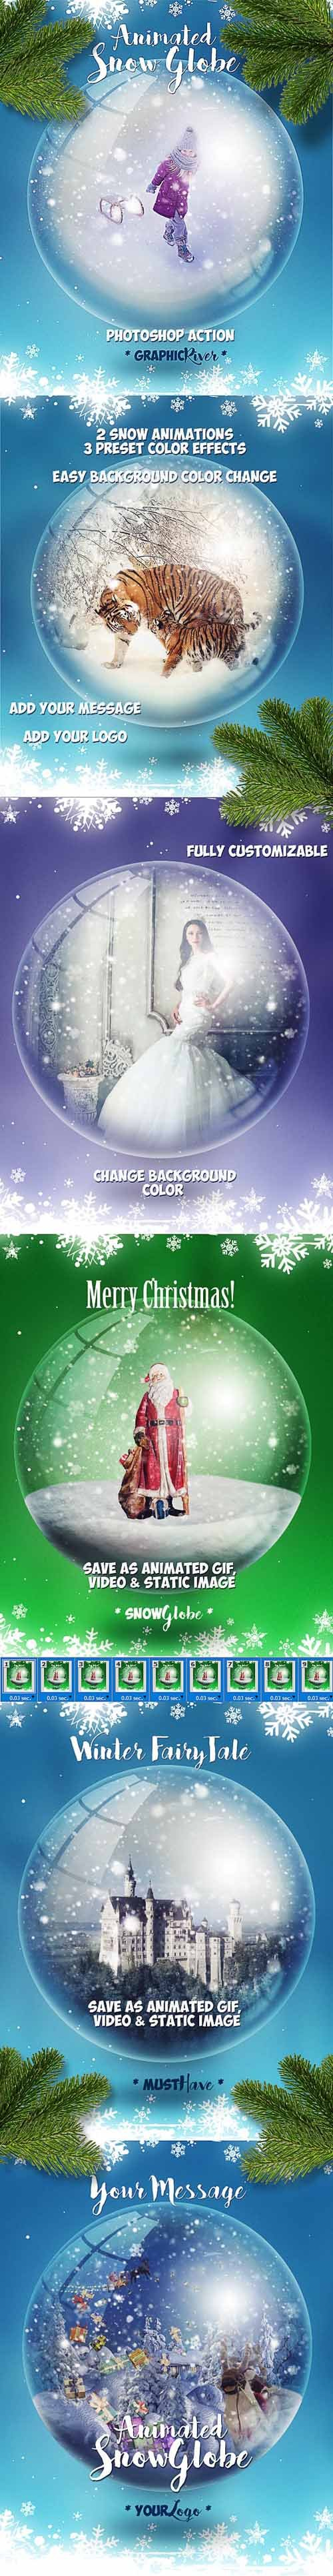 GraphicRiver - Animated Snow Globe Photoshop Action for Christmas - 18841655